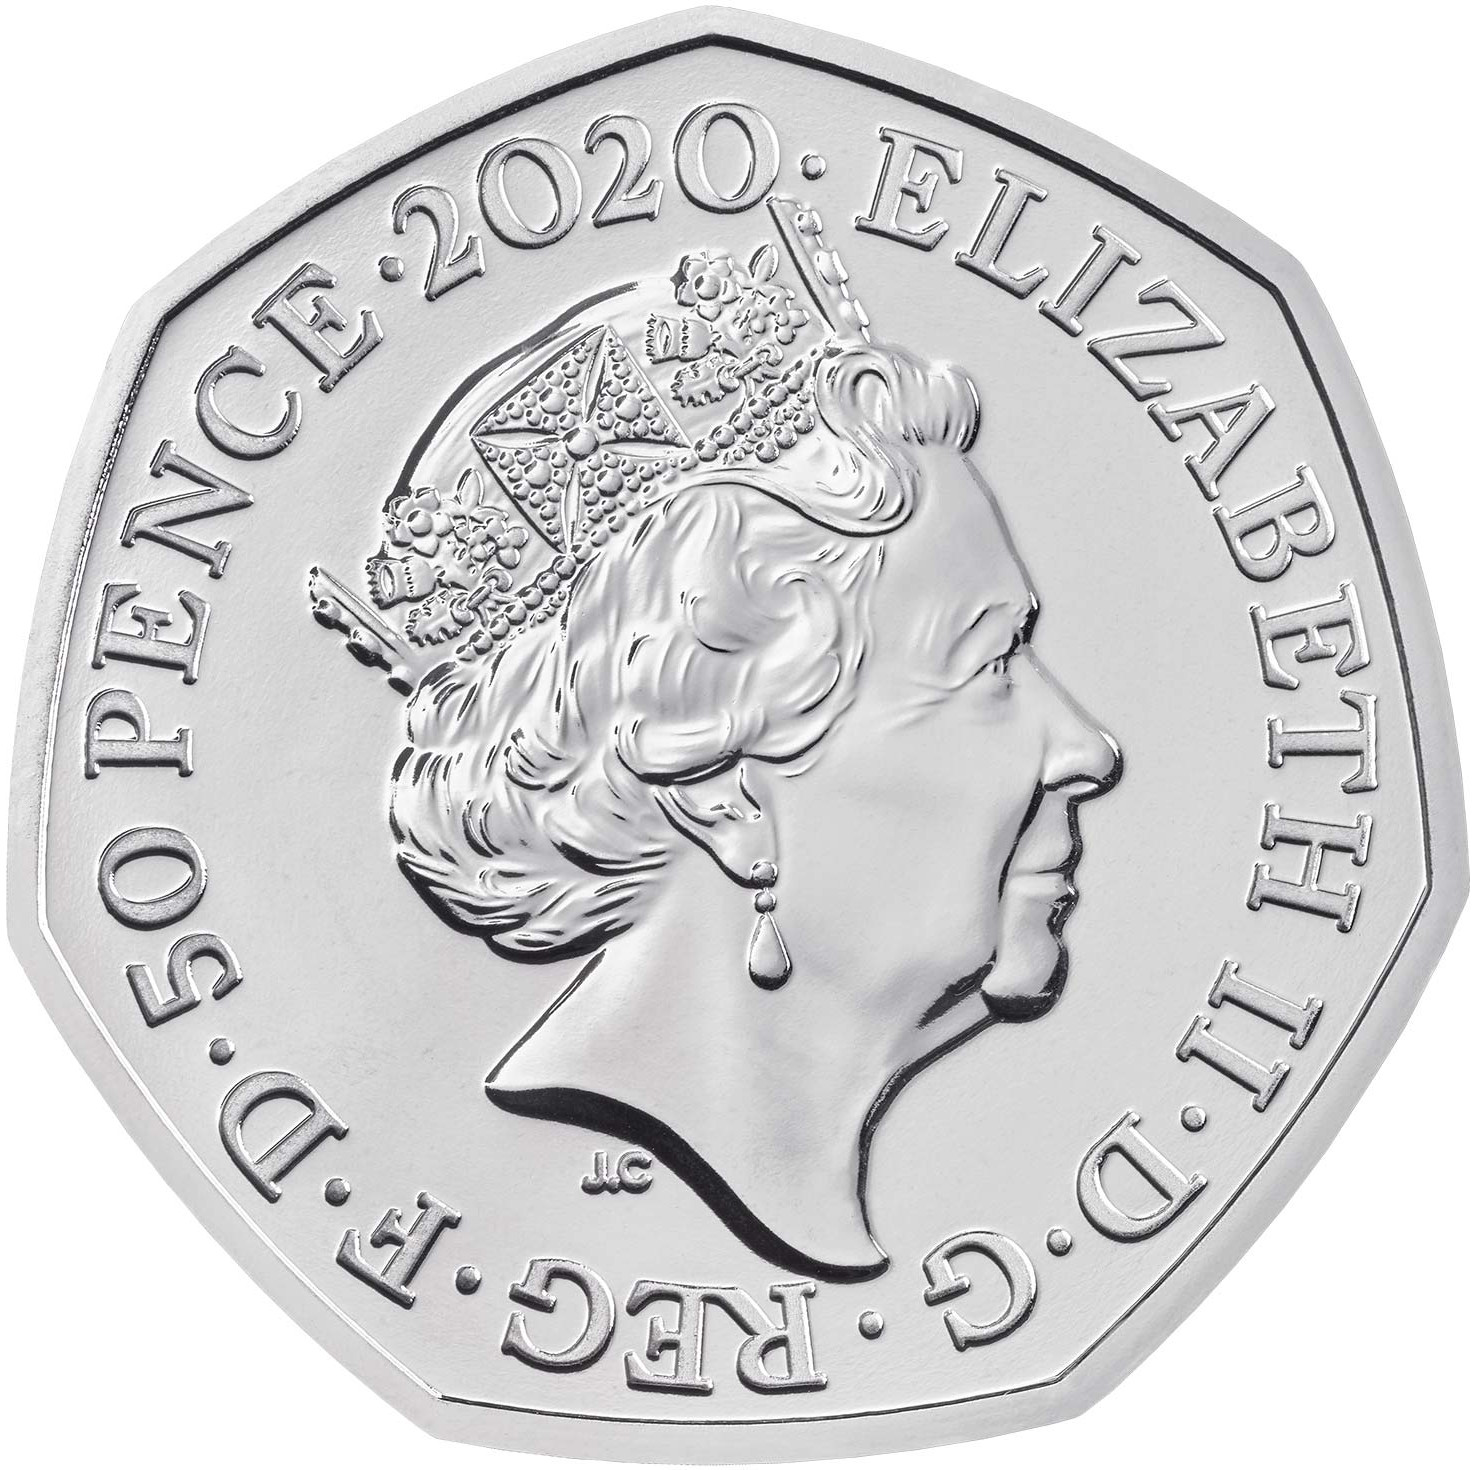 Fifty Pence 2020 Brexit: Photo Withdrawal from the European Union 2020 UK 50p Brilliant Uncirculated Coin